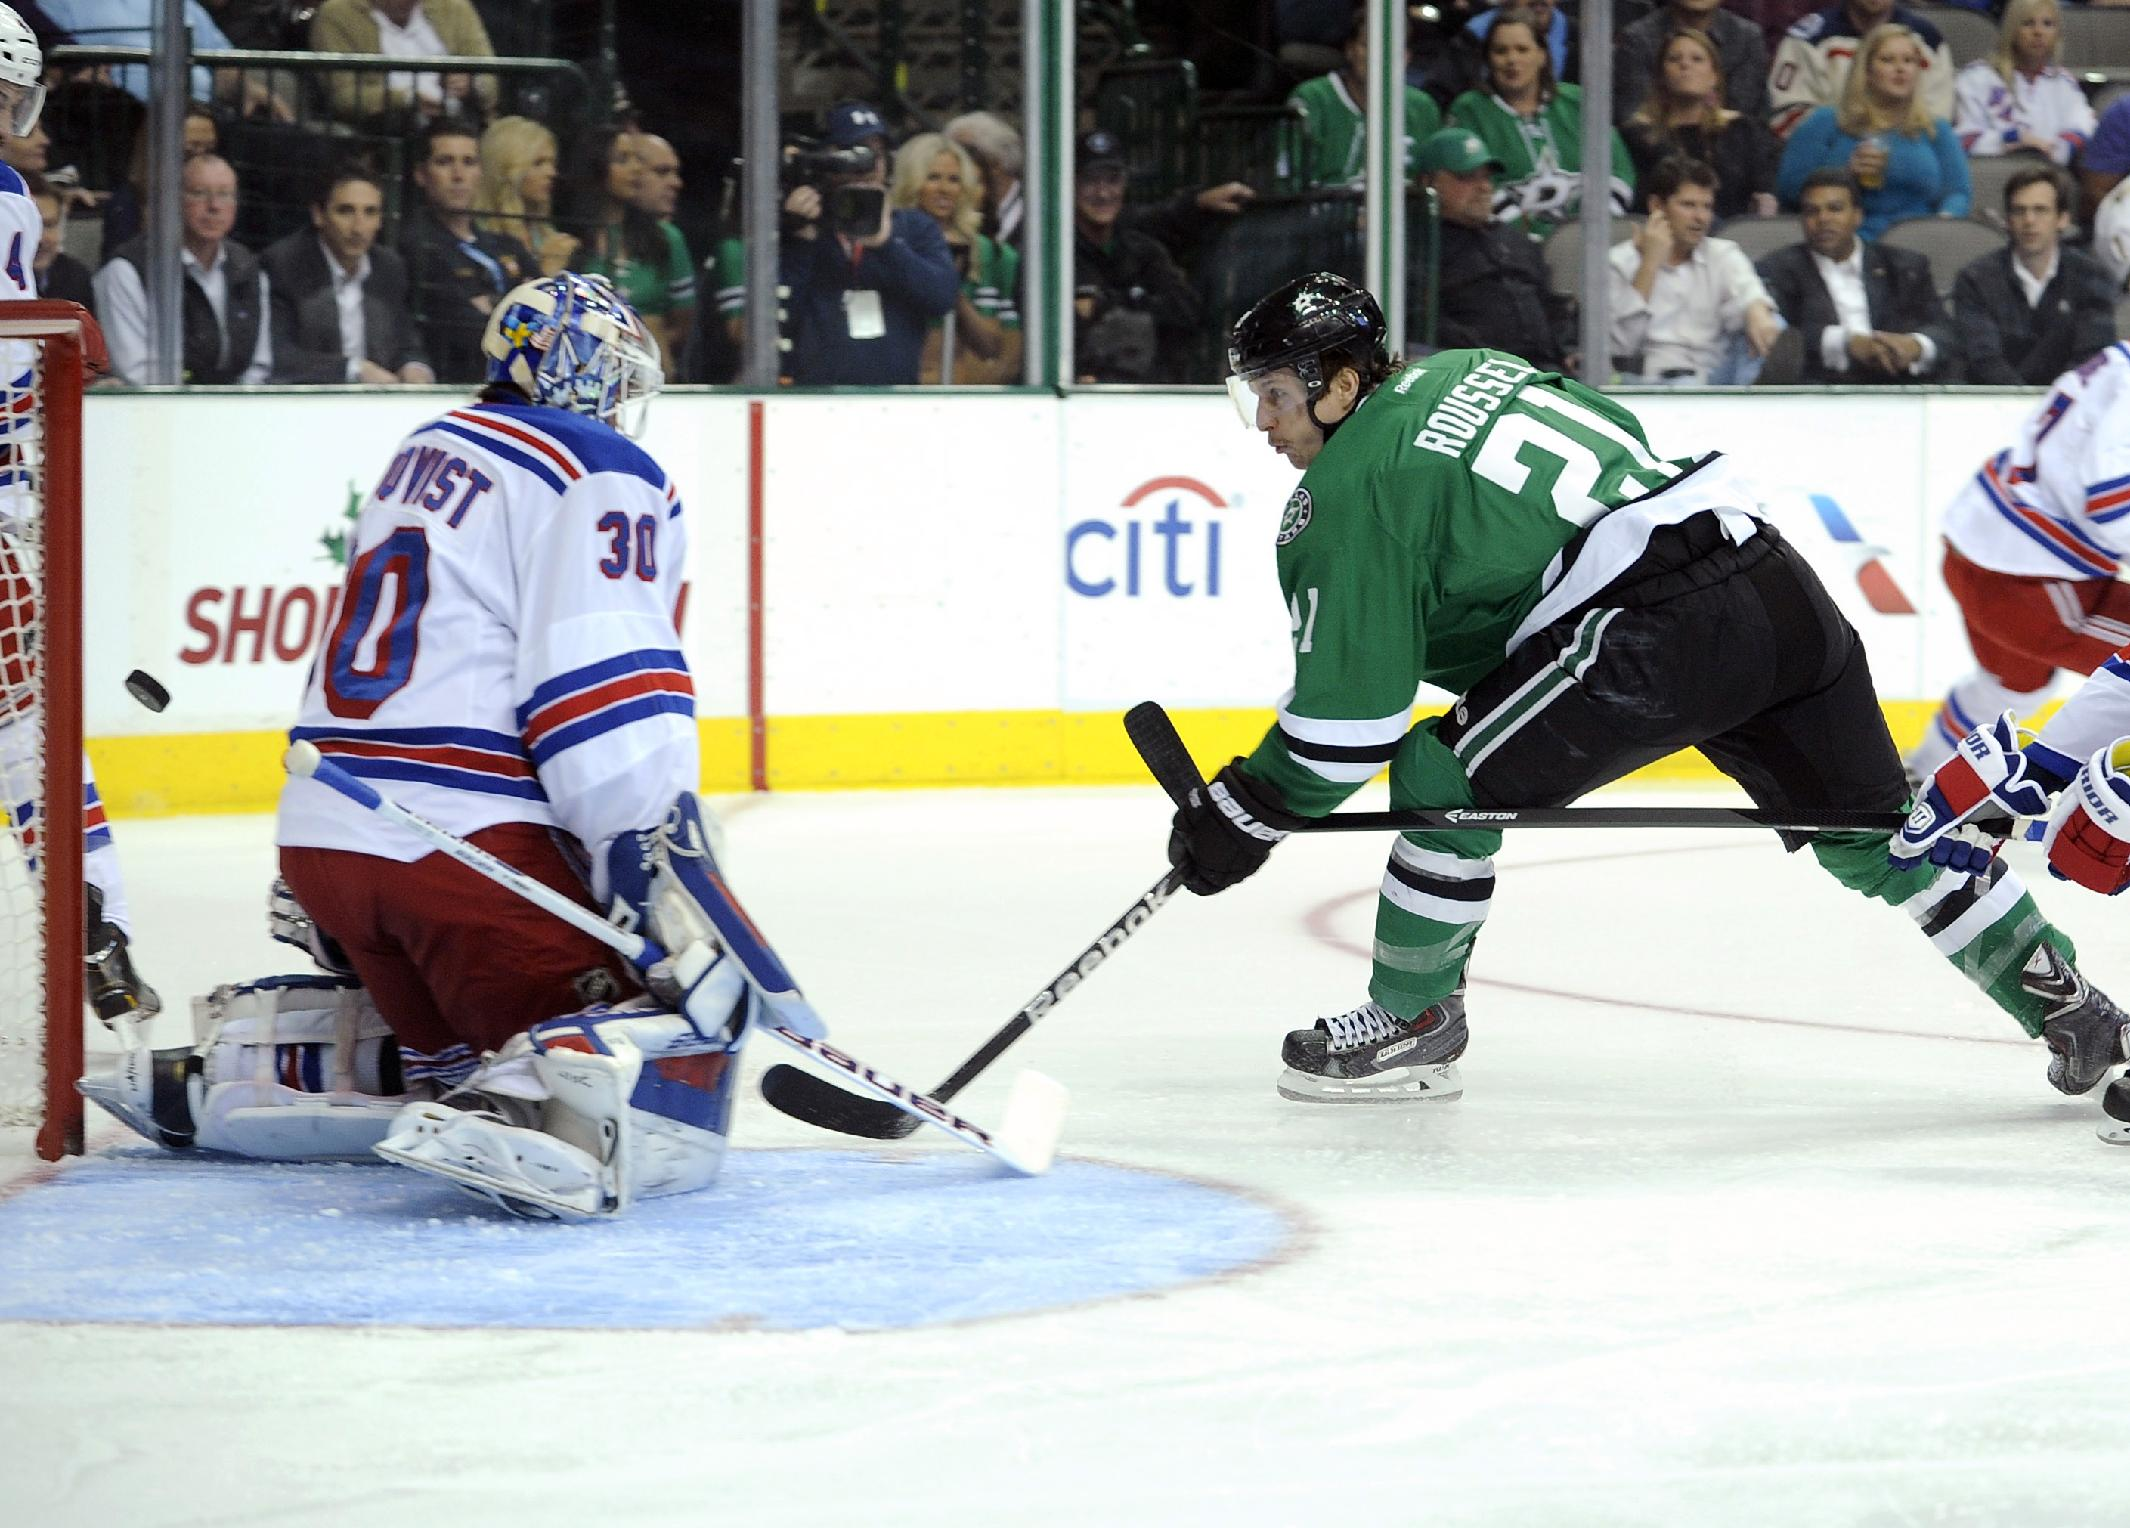 Dallas Stars left wing Antoine Roussel (21) gets a shot off wide of New York Rangers goalie Henrik Lundqvist (30) during the first period of an NHL hockey game, Thursday Nov. 21, 2013 in Dallas